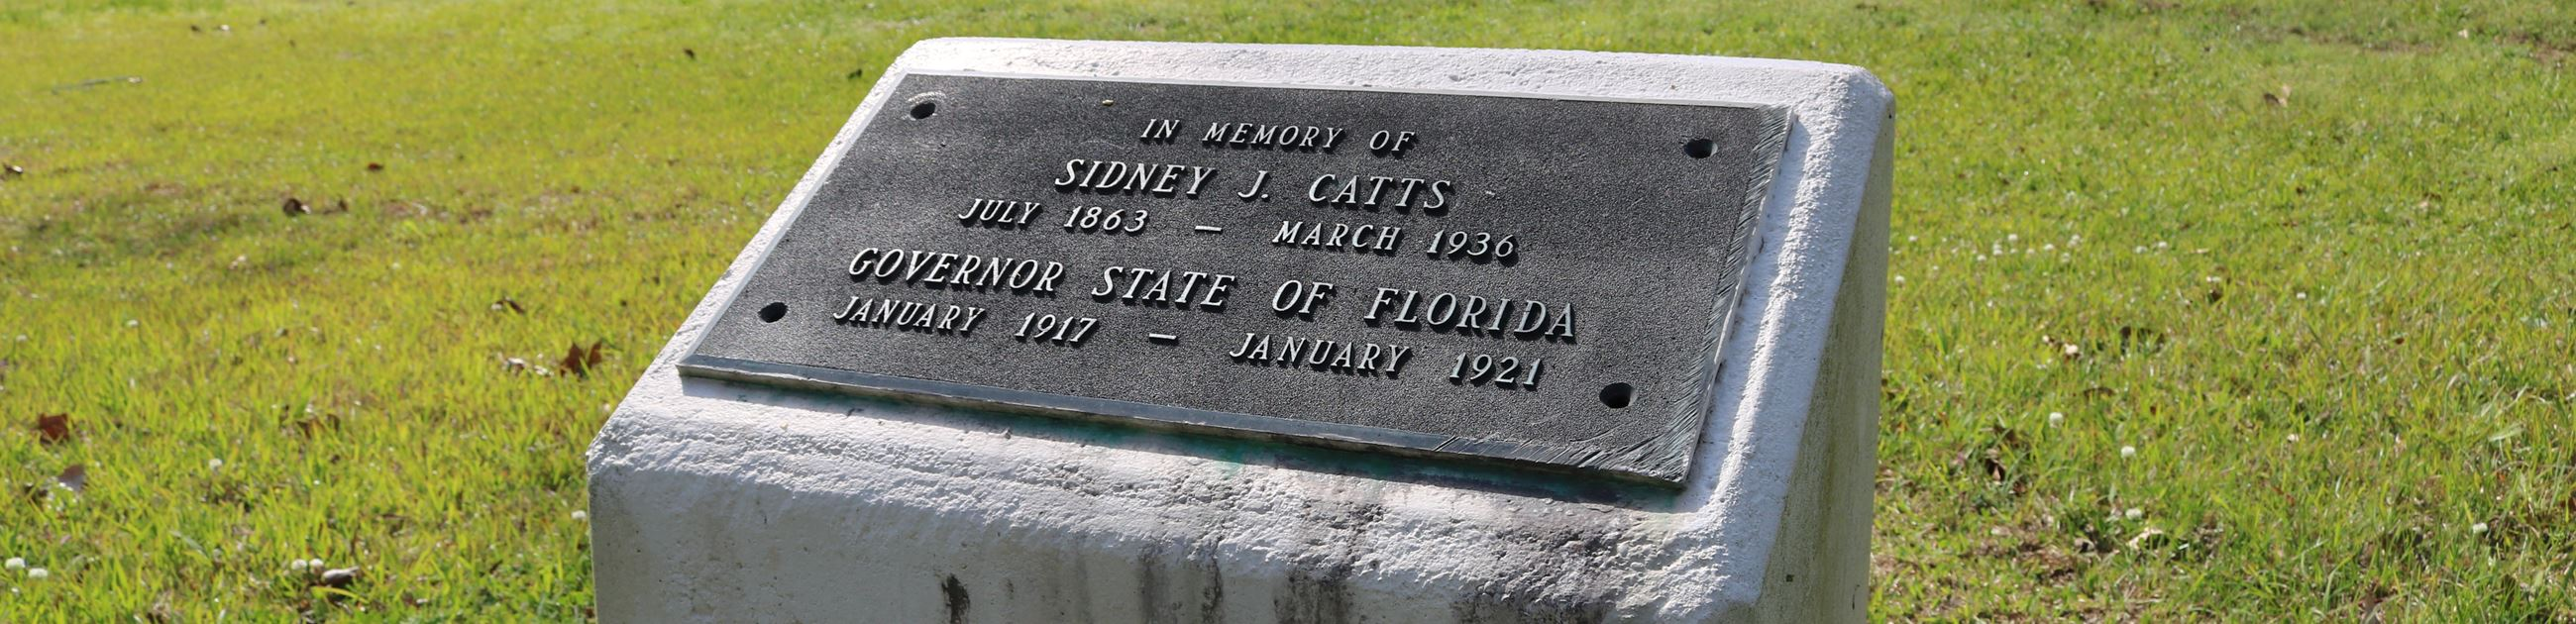 Governor Sidney J. Catts Monument